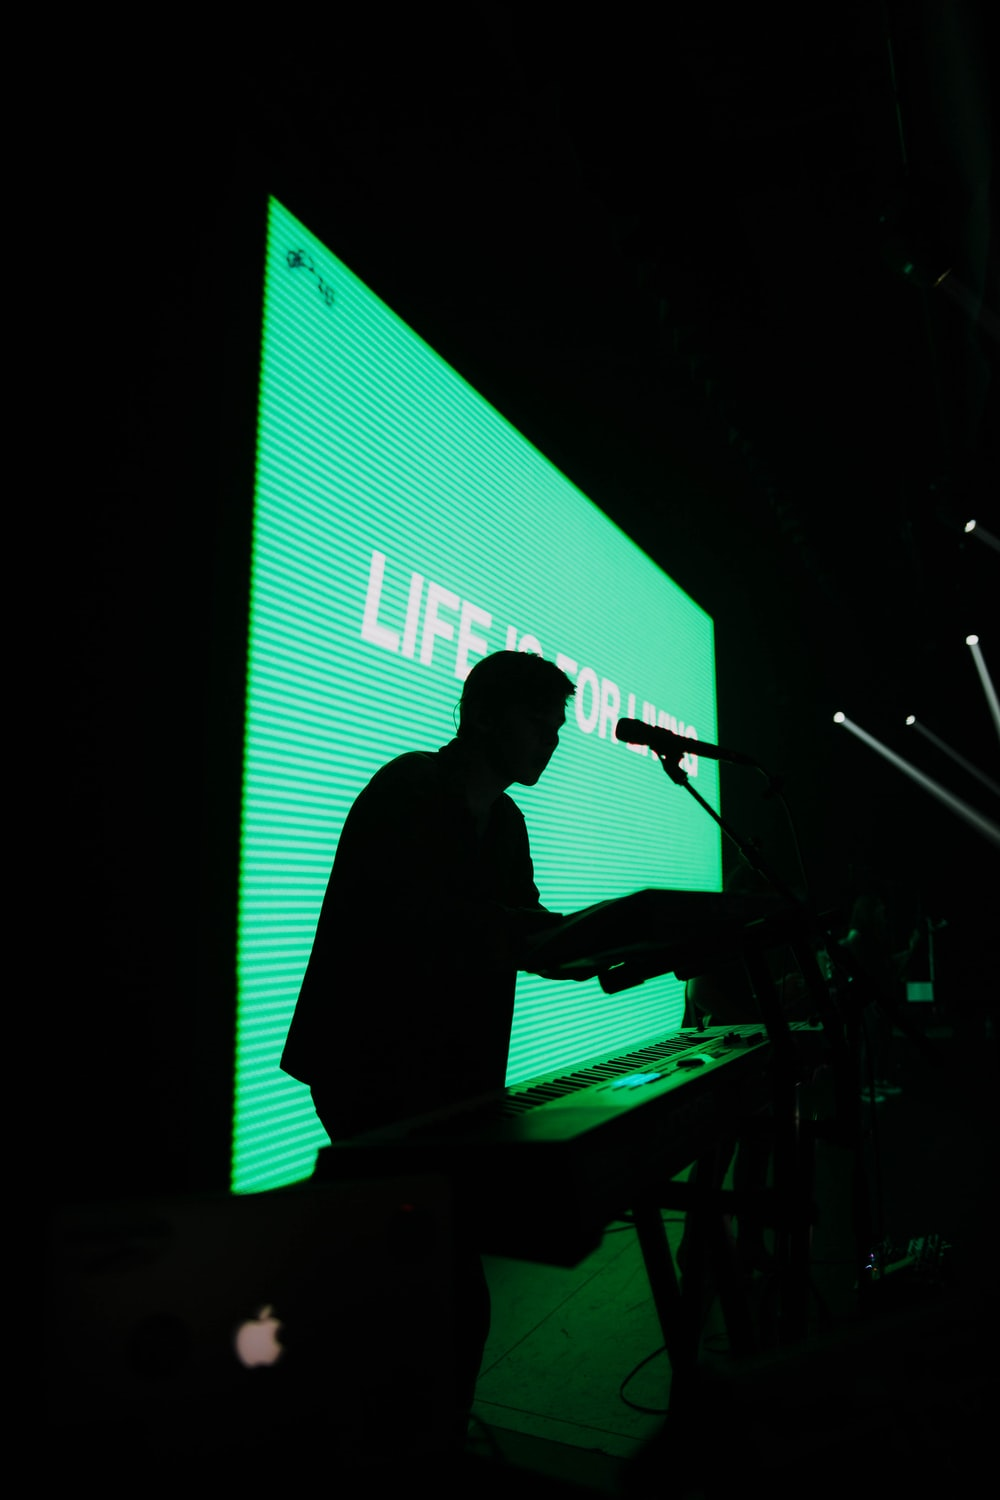 silhouette of man standing beside electric keyboard